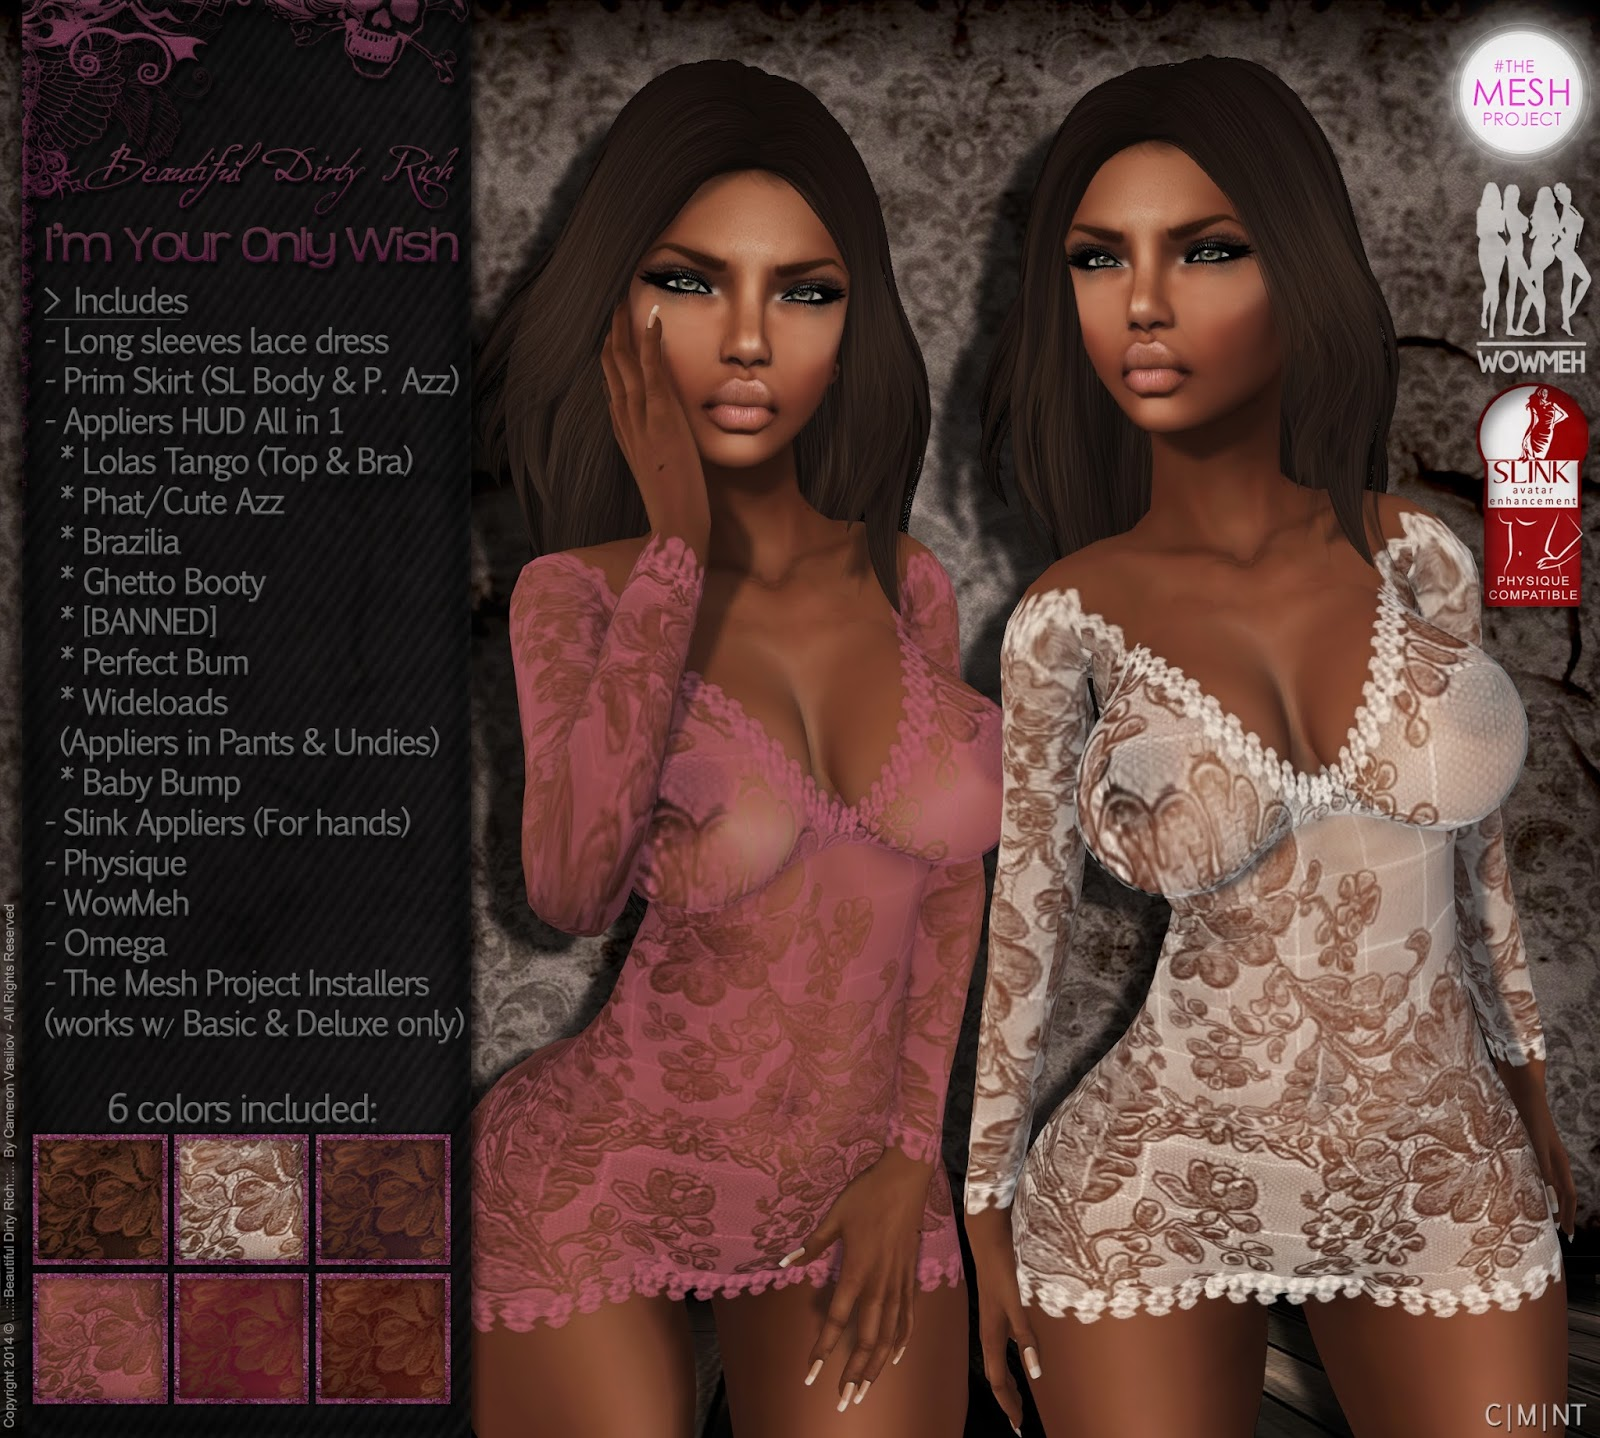 https://marketplace.secondlife.com/p/BDR-Im-Your-Only-Wish-APPLIERS-UPDATE-Azz-Omega-WowMeh-Physique-and-TheMeshProject/4525259